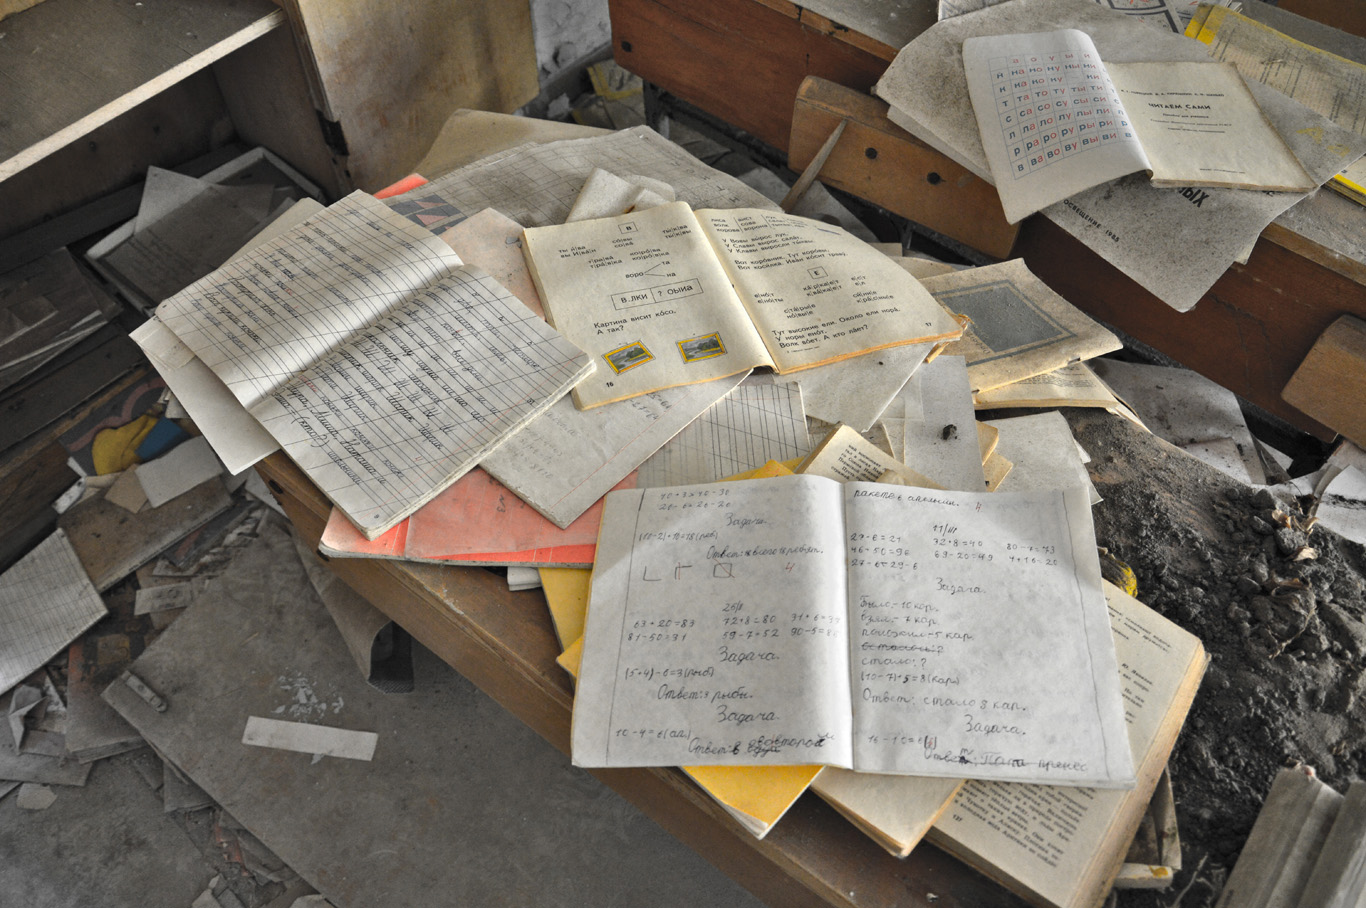 Notebooks left by the students